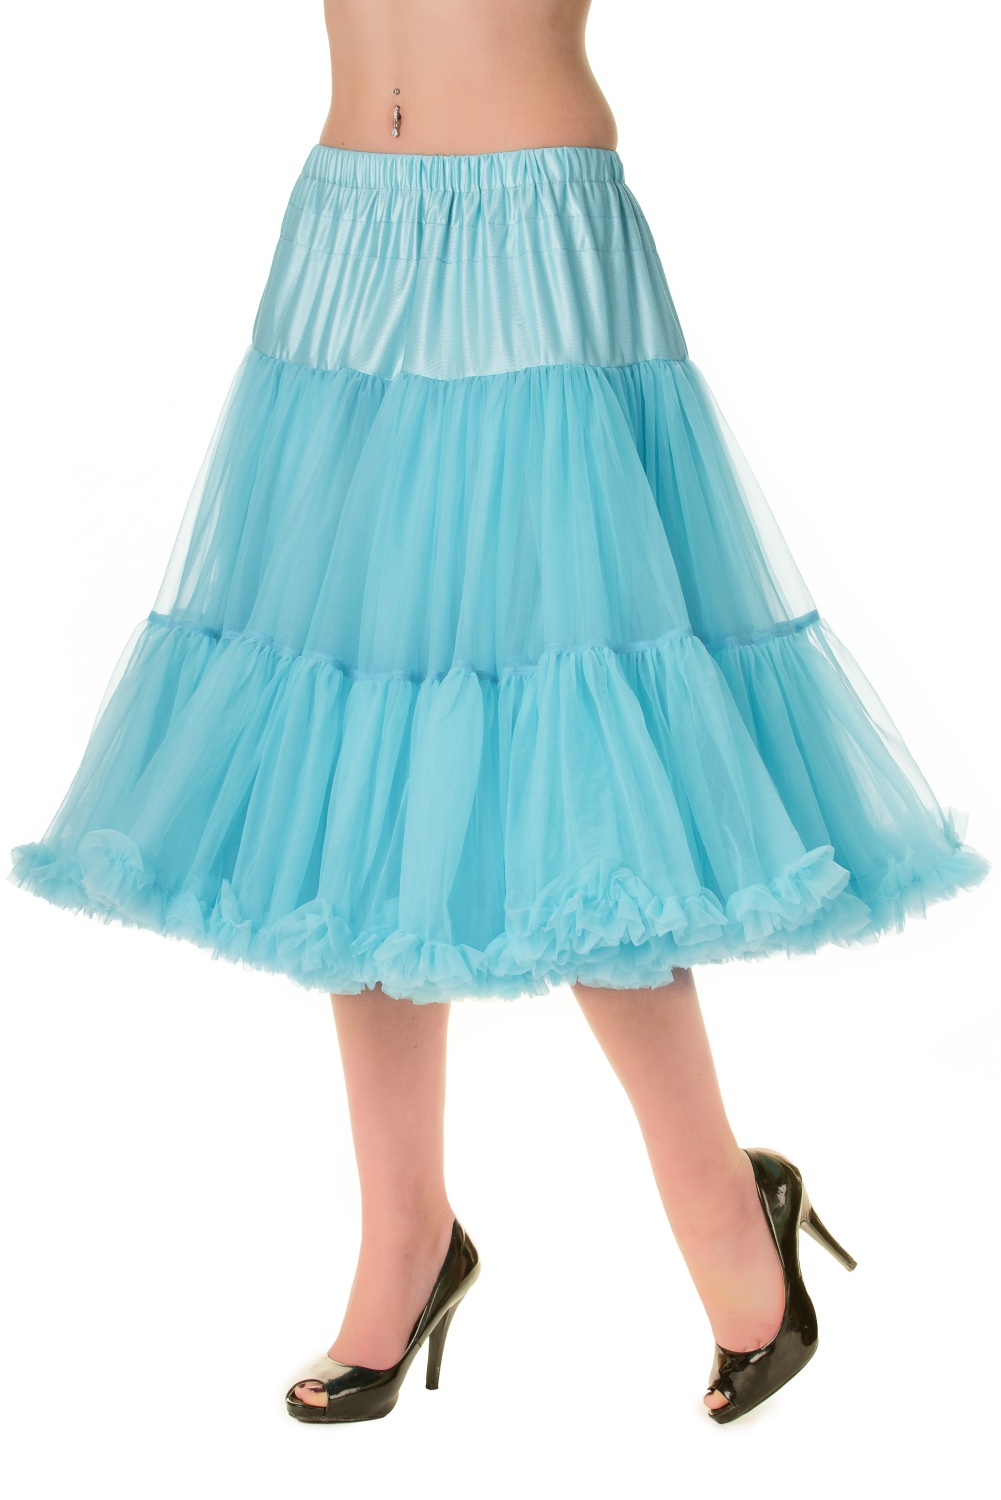 Banned Blue Lifeforms 26 Inch Petticoat